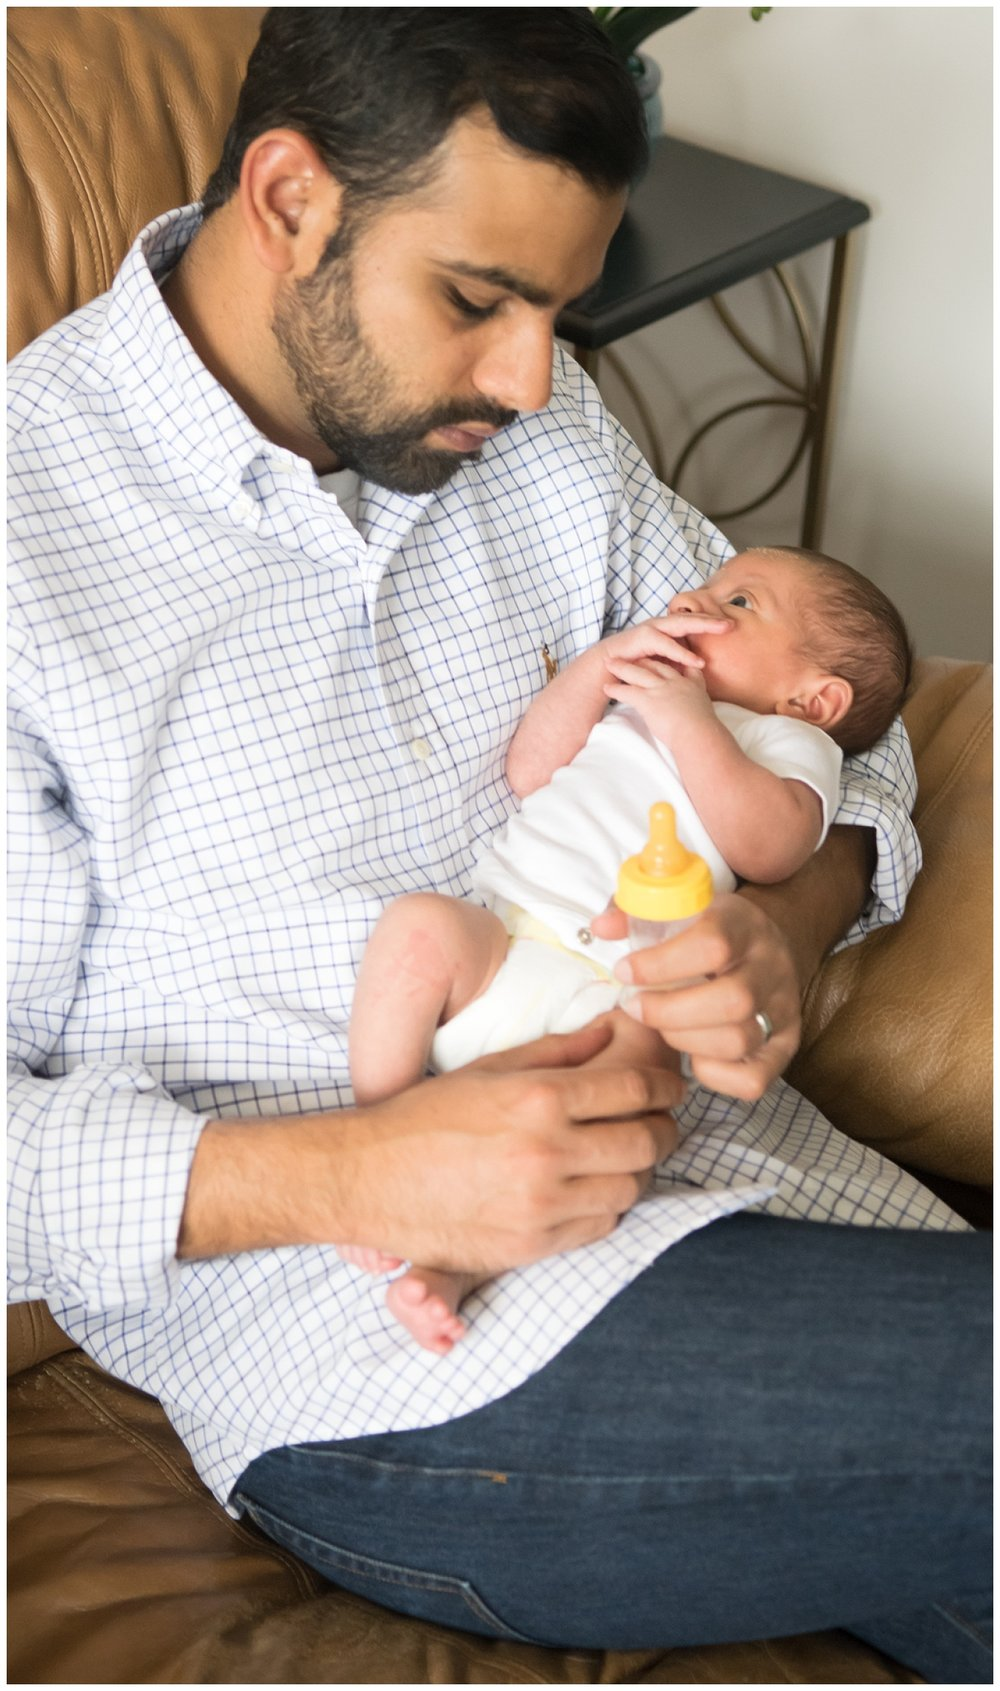 this is a candid image of a dad holding his newborn son while sitting on the couch. this was taken during a lifestyle newborn family session in decatur georgia.